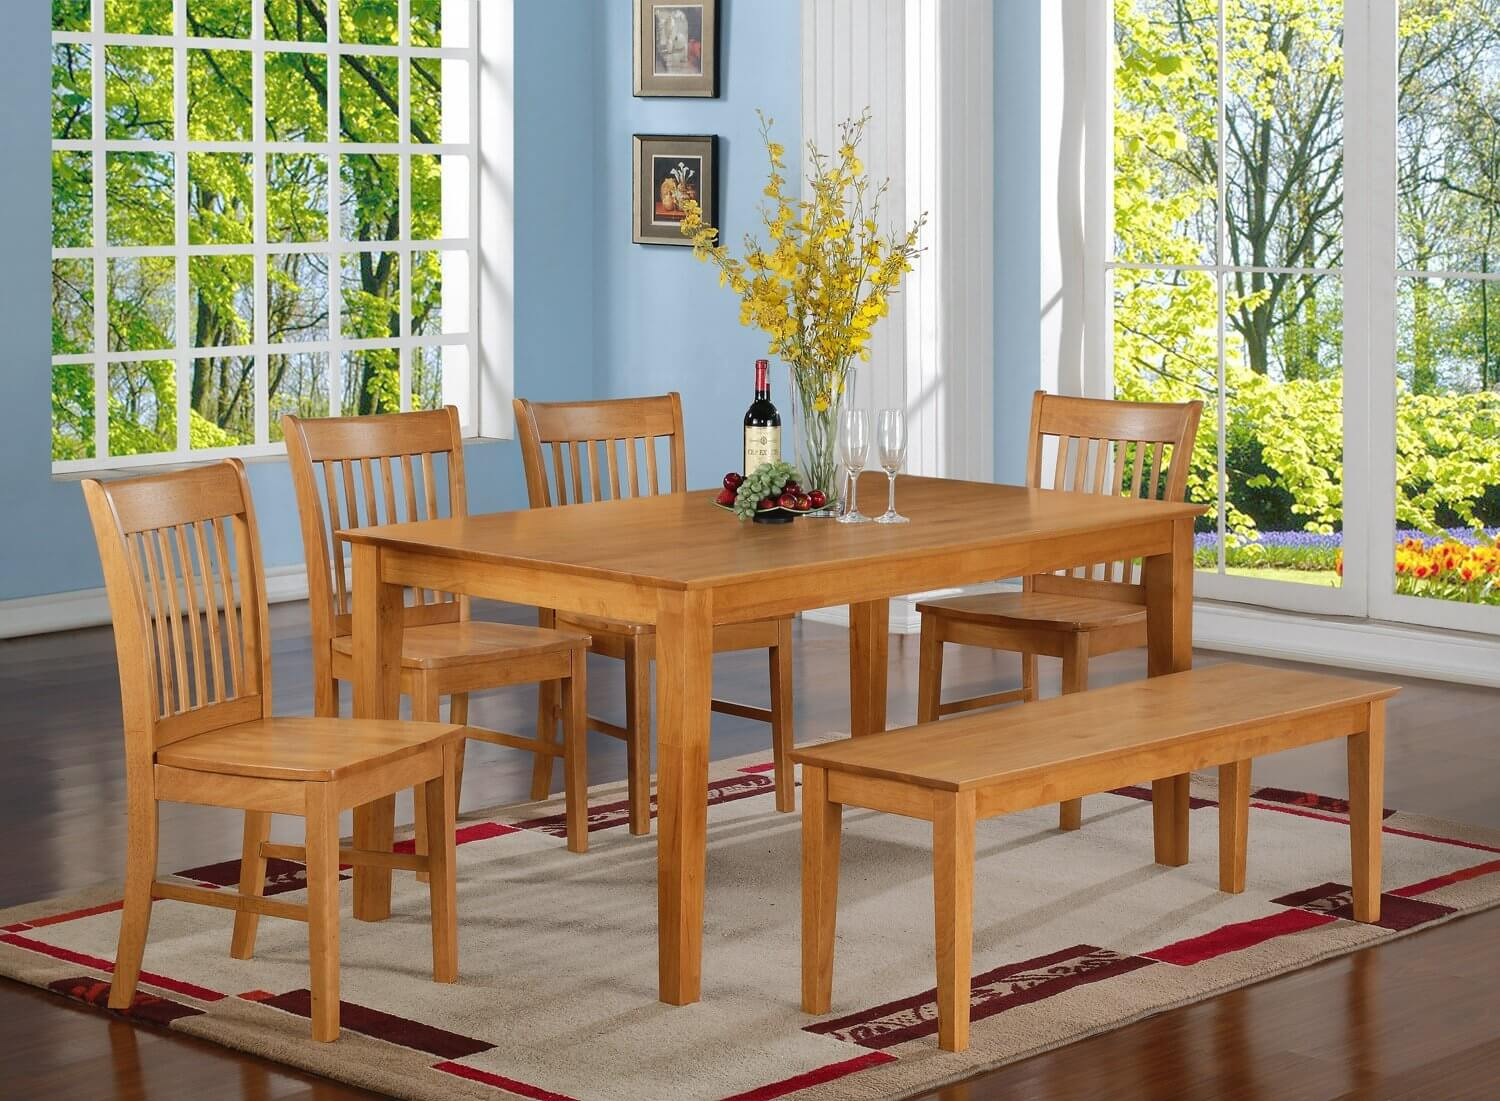 dining room sets bench seating kitchen table chairs Oak finish six piece bench style dining room set with large rectangle table It s